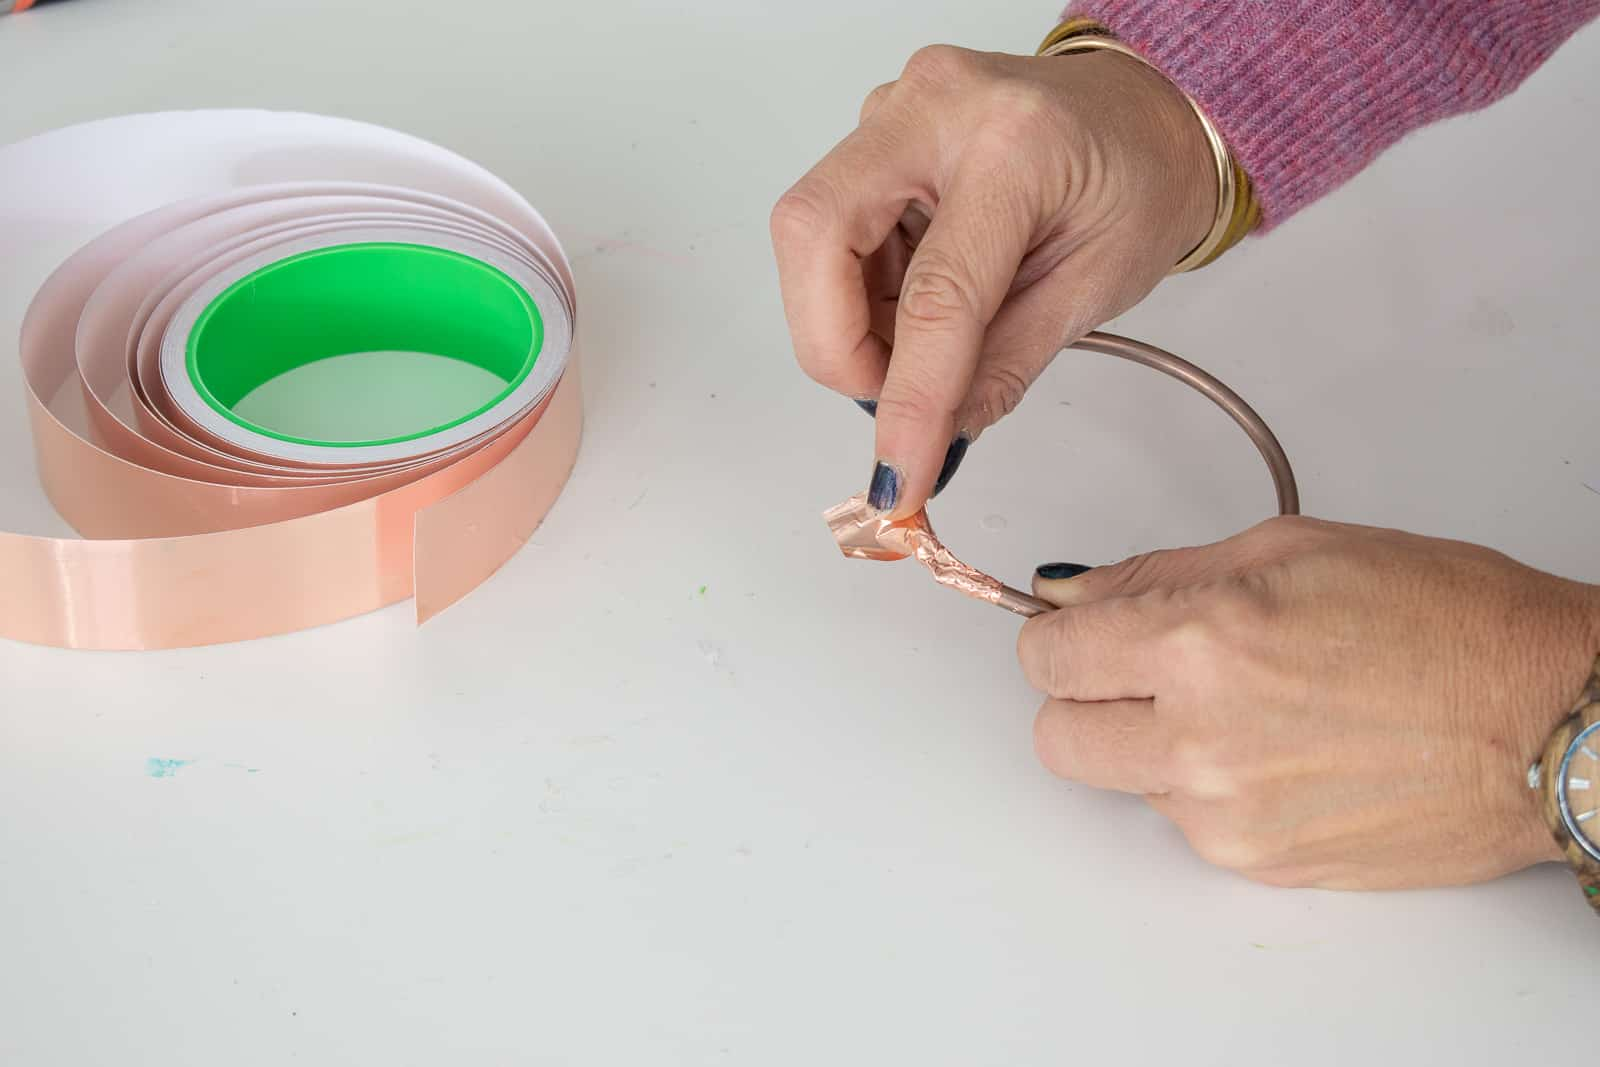 tape the ends of the copper circle together